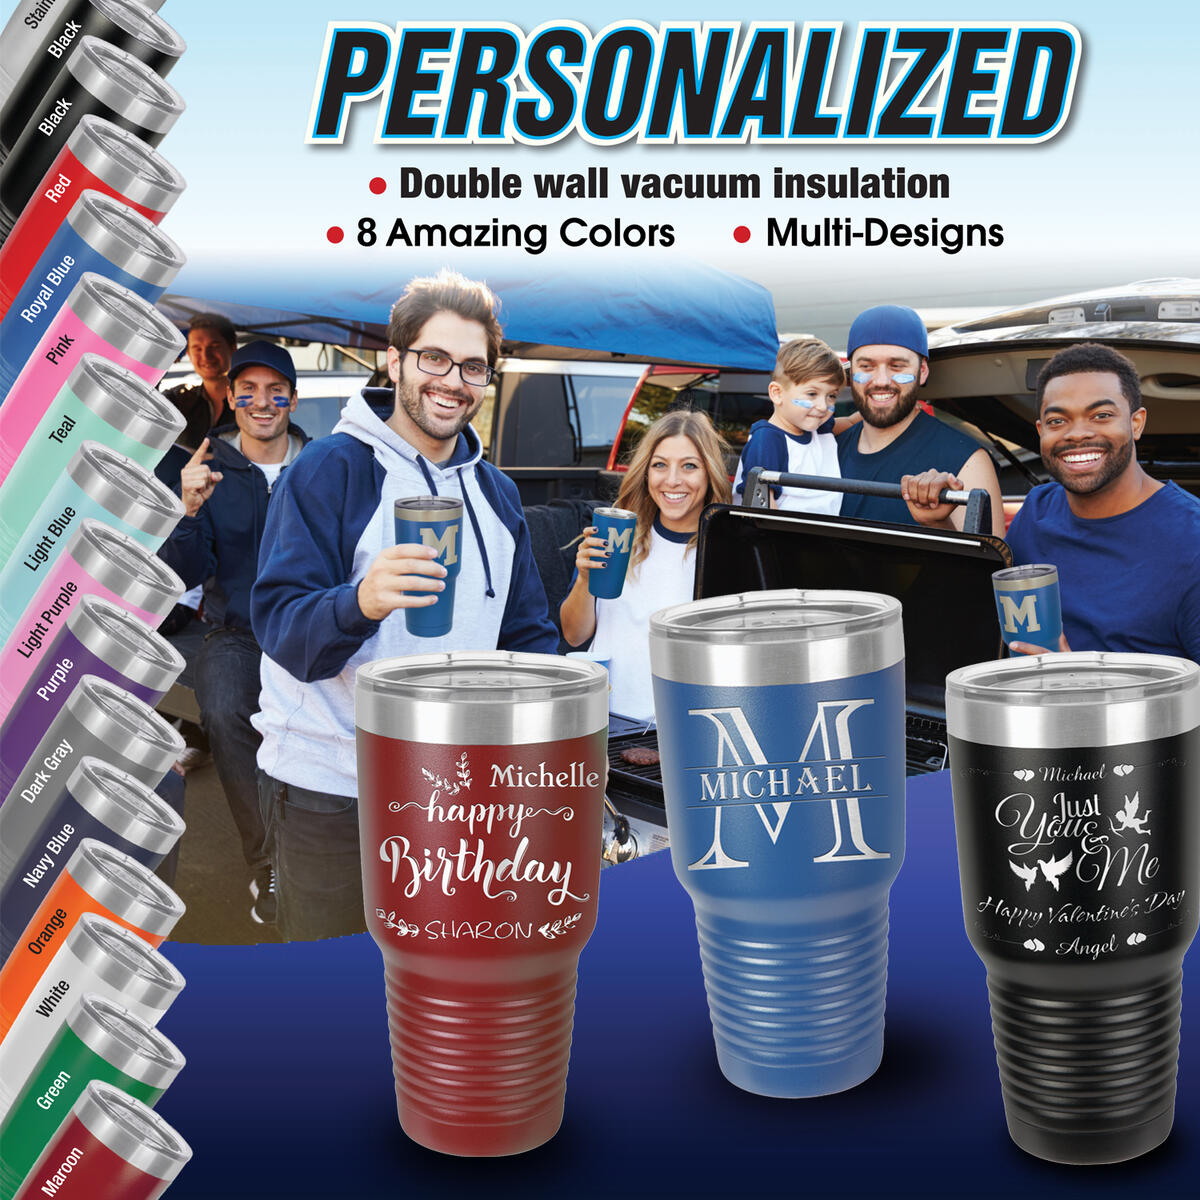 Personalized Tumblers 30oz, 20oz with Lids and Straws, Your Name or Text Engraved in USA, Vacuum Insulated Travel Coffee Mugs, Stainless Steel Double Wall Thermos, Customized Cups (18 Designs, 9 Colors)